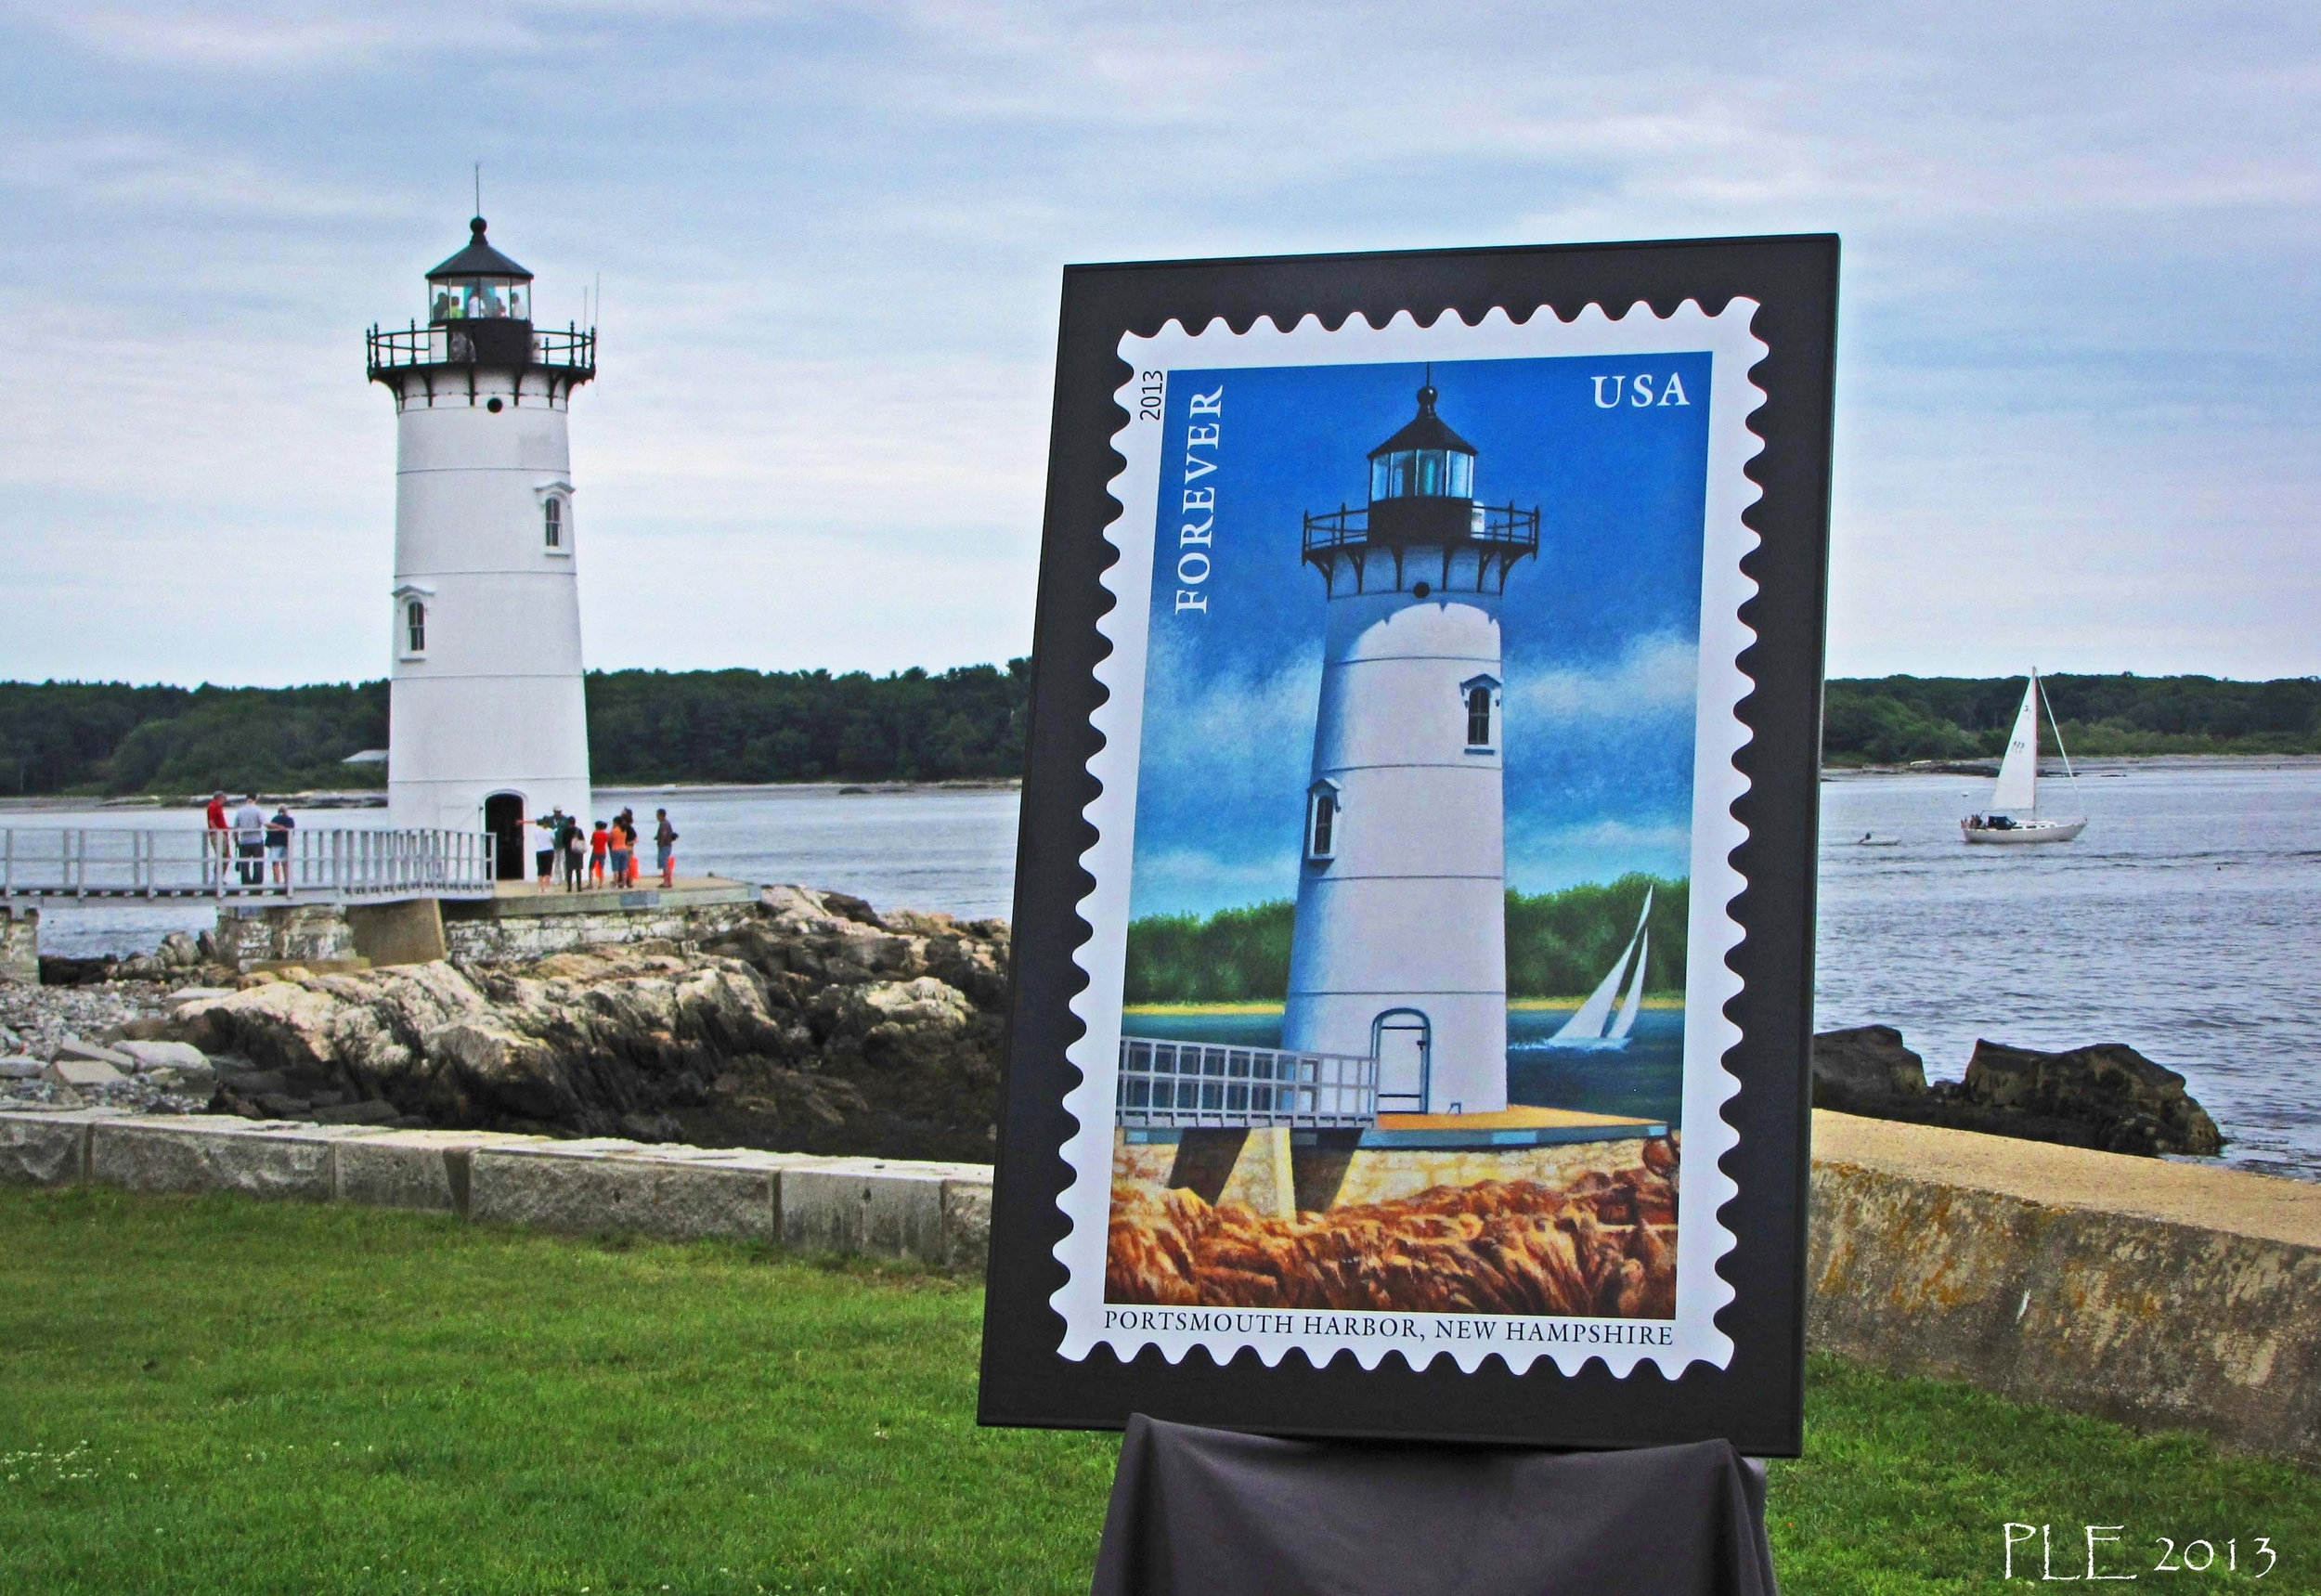 "NEW HAMPSHIRE    Portsmouth Harbor Lighthouse Stamp – First Day of Issue Ceremony New England Today - Yankee Magazine - April 28, 2014   I was quite excited to learn that Portsmouth Harbor Lighthouse has been chosen Editors' Choice for Best Lighthouse in the May/June issue of the Yankee Magazine Travel Guide to New England.  Portsmouth Harbor Lighthouse is a short drive up the coast from my house here in Southern New Hampshire. I have visited it on land often and have passed by it on the ferry when heading out to the Isles of Shoals many times. It is a well-known, and much loved icon on our NH coastline.  So, it was a proud day on Saturday, July 13, 2013, when the US Post Office commemorated a postage stamp with the image of the lighthouse as part of a 5-stamp series called ""The Lighthouses of New England."" A formal ceremony was held under a tent, on the lawn in front of the lighthouse. A large poster of the painting of the lighthouse, that was used as the artwork for the postage stamp, was unveiled.  After the ceremony, I asked one of the organizers if he would be willing to move the poster of the stamp outside to the lawn, so I could photograph it with the real lighthouse in the background. Just as I was getting ready to take the photo, a sailboat passed by, making my image look even more like the stamp!  I am planning to enter this photo in the 2014 ""My New England"" Photo Contest, but thought you might like to see it now, since the lighthouse will be featured in your May/June issue.   Photographer:  Patricia Lane Evans   Location:  Seabrook, New Hampshire   https://newengland.com/today/travel/new-hampshire/portsmouth-harbor-lighthouse-stamp-first-day-of-issue-ceremony/"